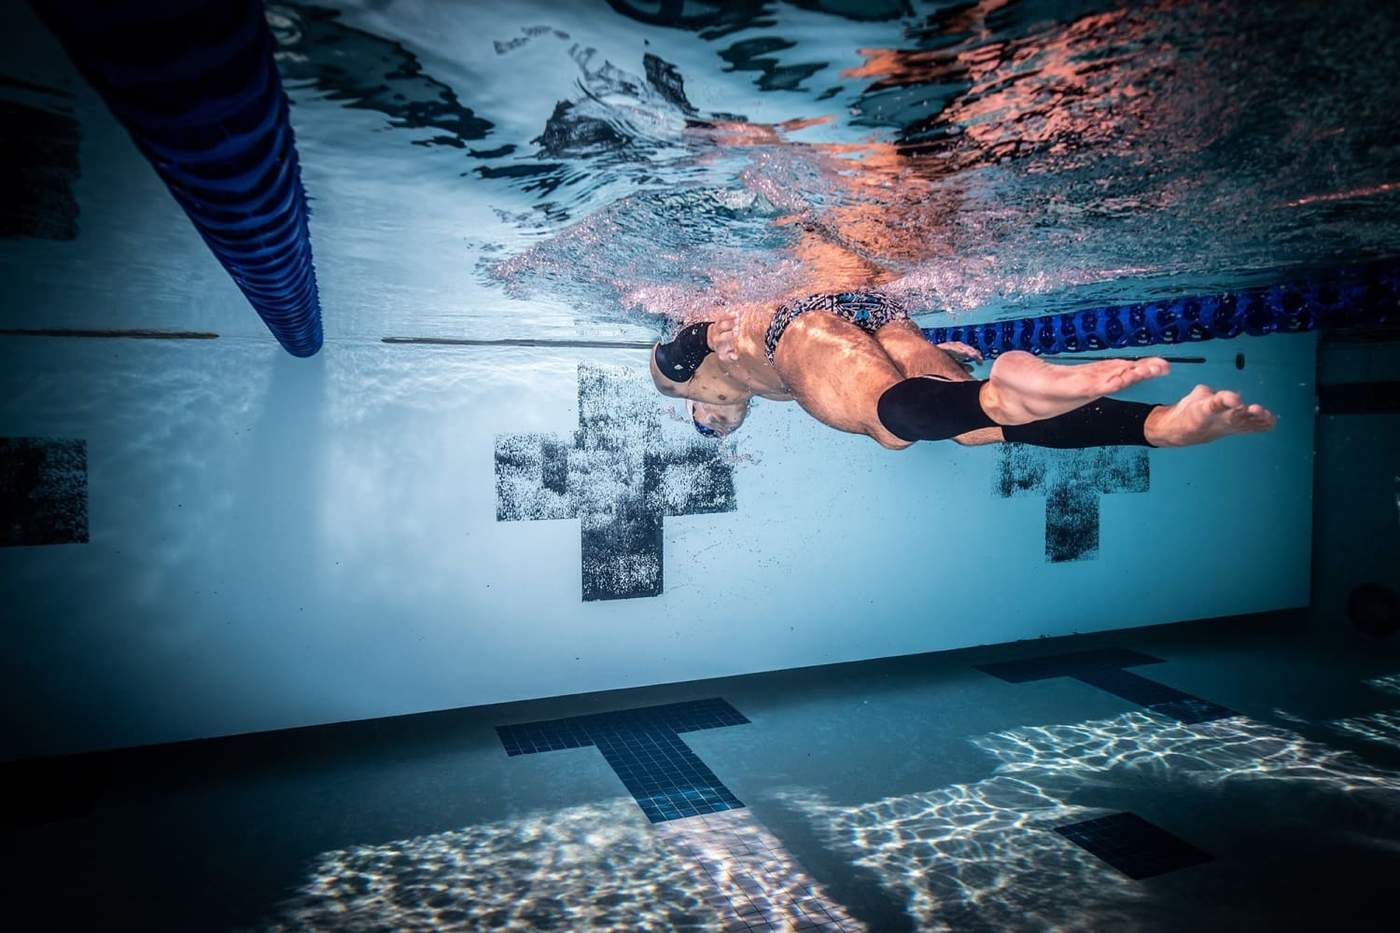 How To Do A Perfect Flipturn Entrainement Natation Natation